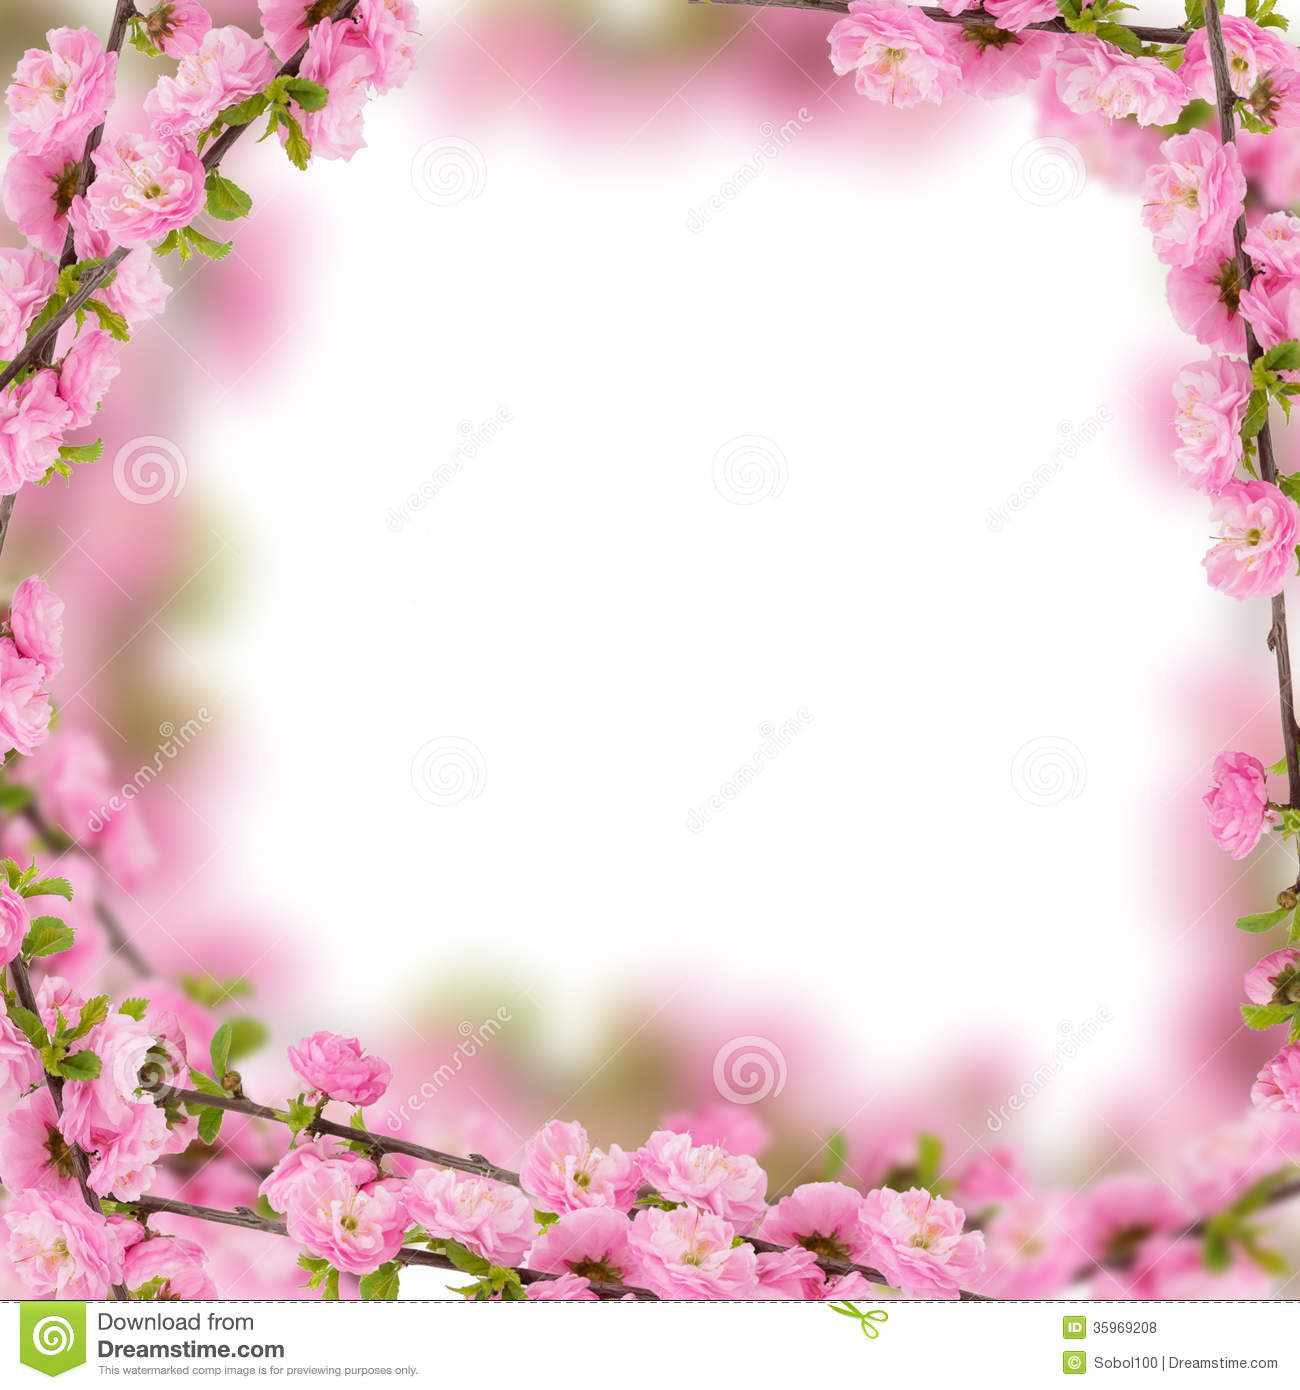 Fresh Almond Flowers On Pink Background Royalty Free